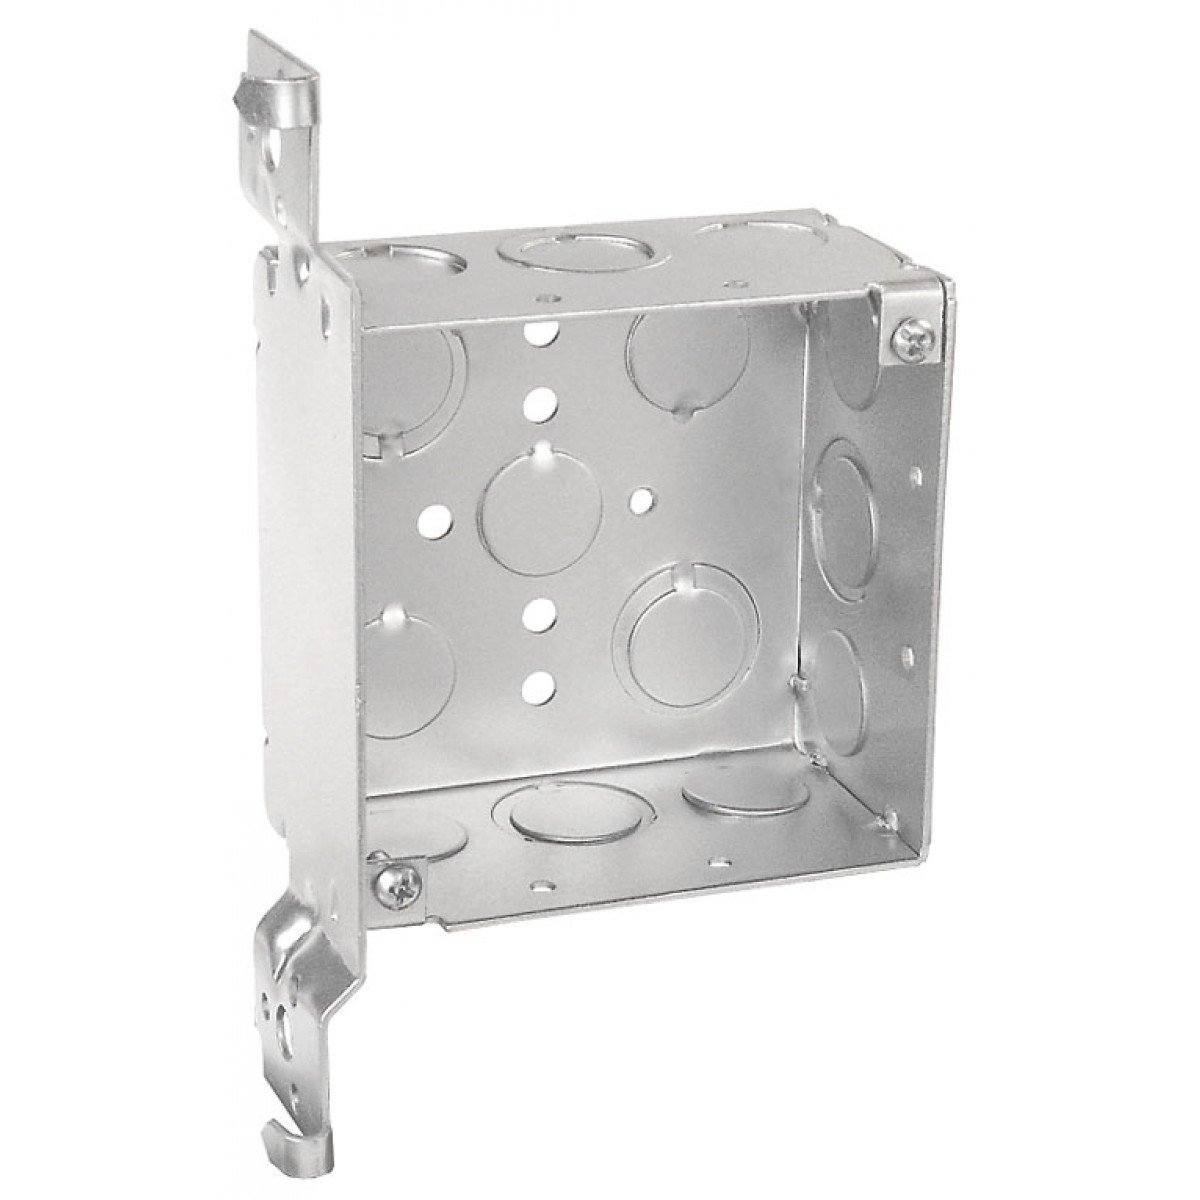 5 Pcs, 4 Square Junction Box, 2-1/8 In. Deep, w/Wood Spike Vertical Bracket, Side Knockout: (4) 1/2 In & (5) 1/2-3/4 In.; Bottom Knockout: (3) 1/2 In. & (2) 1/2-3/4 In., .0625 Galvanized Steel